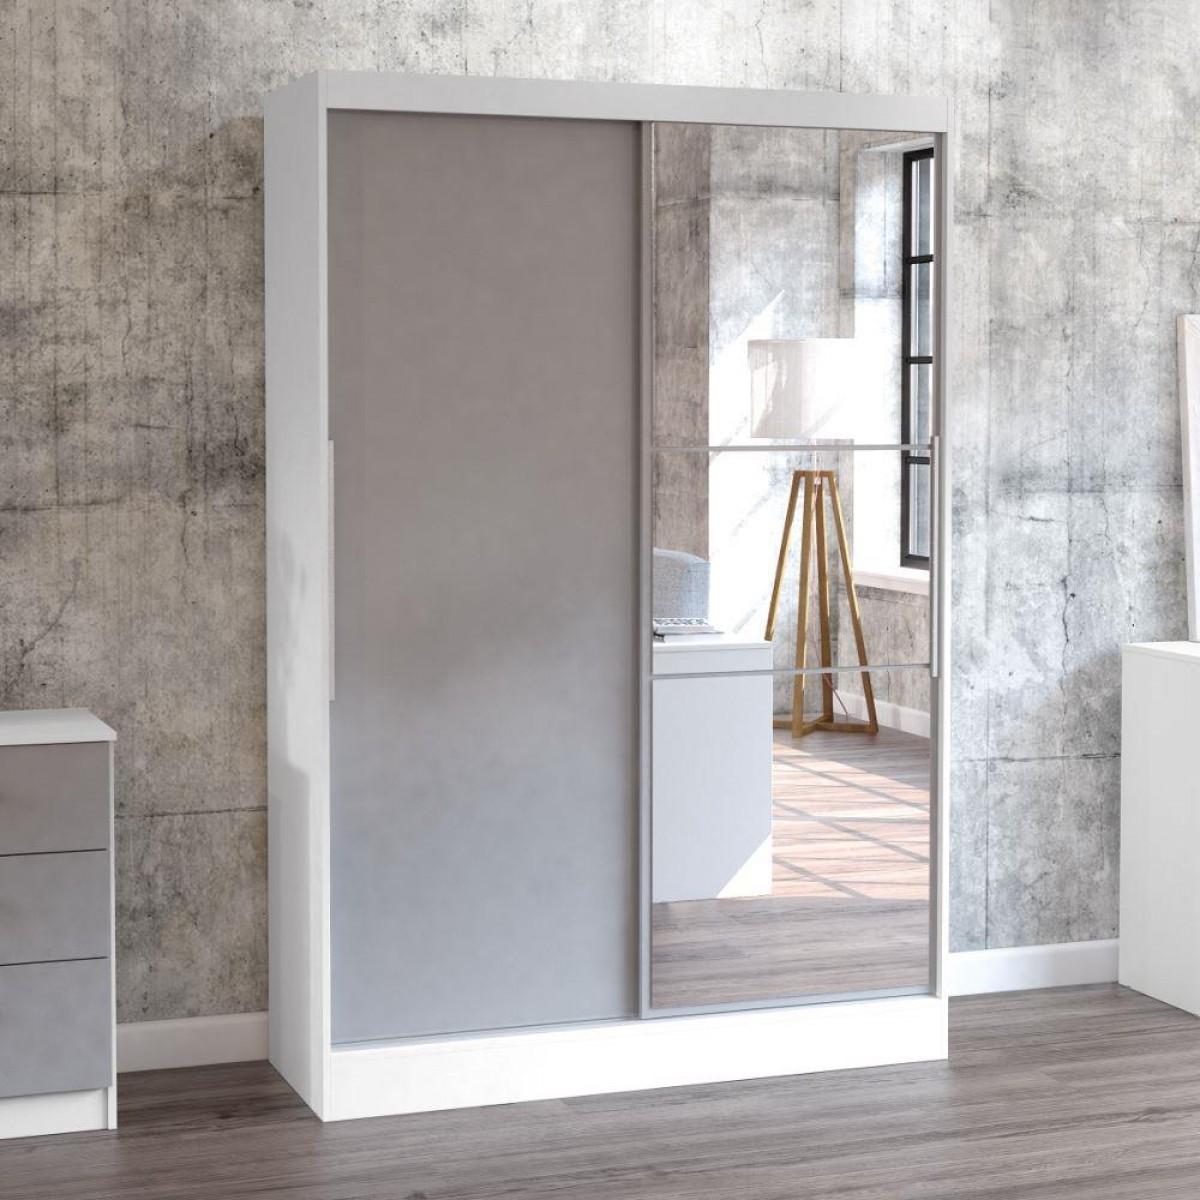 Lynx White and Grey 2 Door Sliding Wardrobe with Mirror